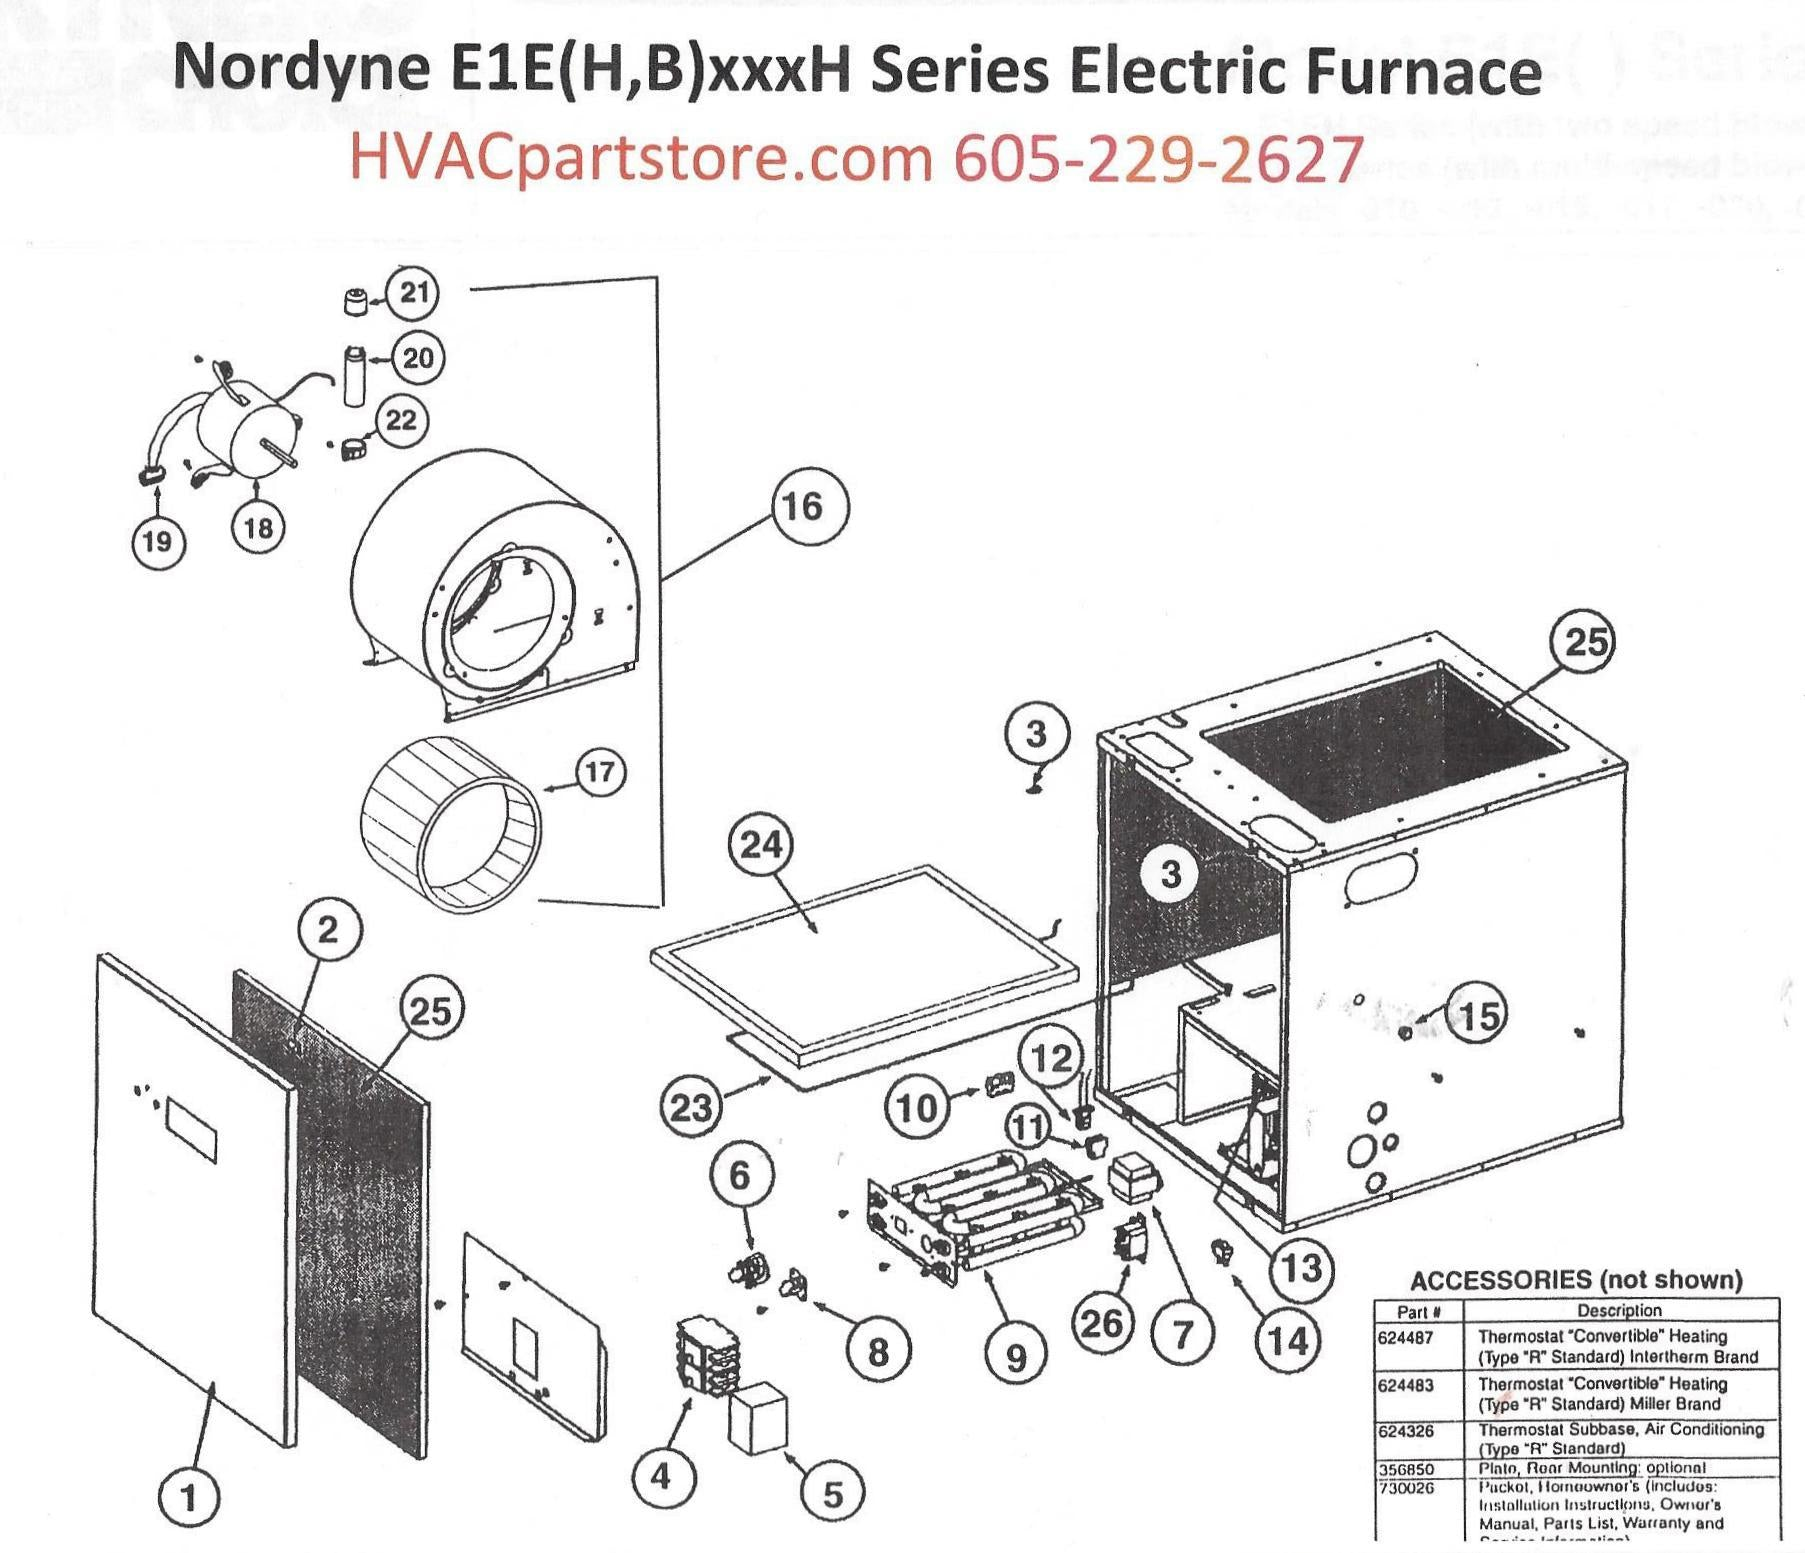 E1eh010h Nordyne Electric Furnace Parts  U2013 Hvacpartstore